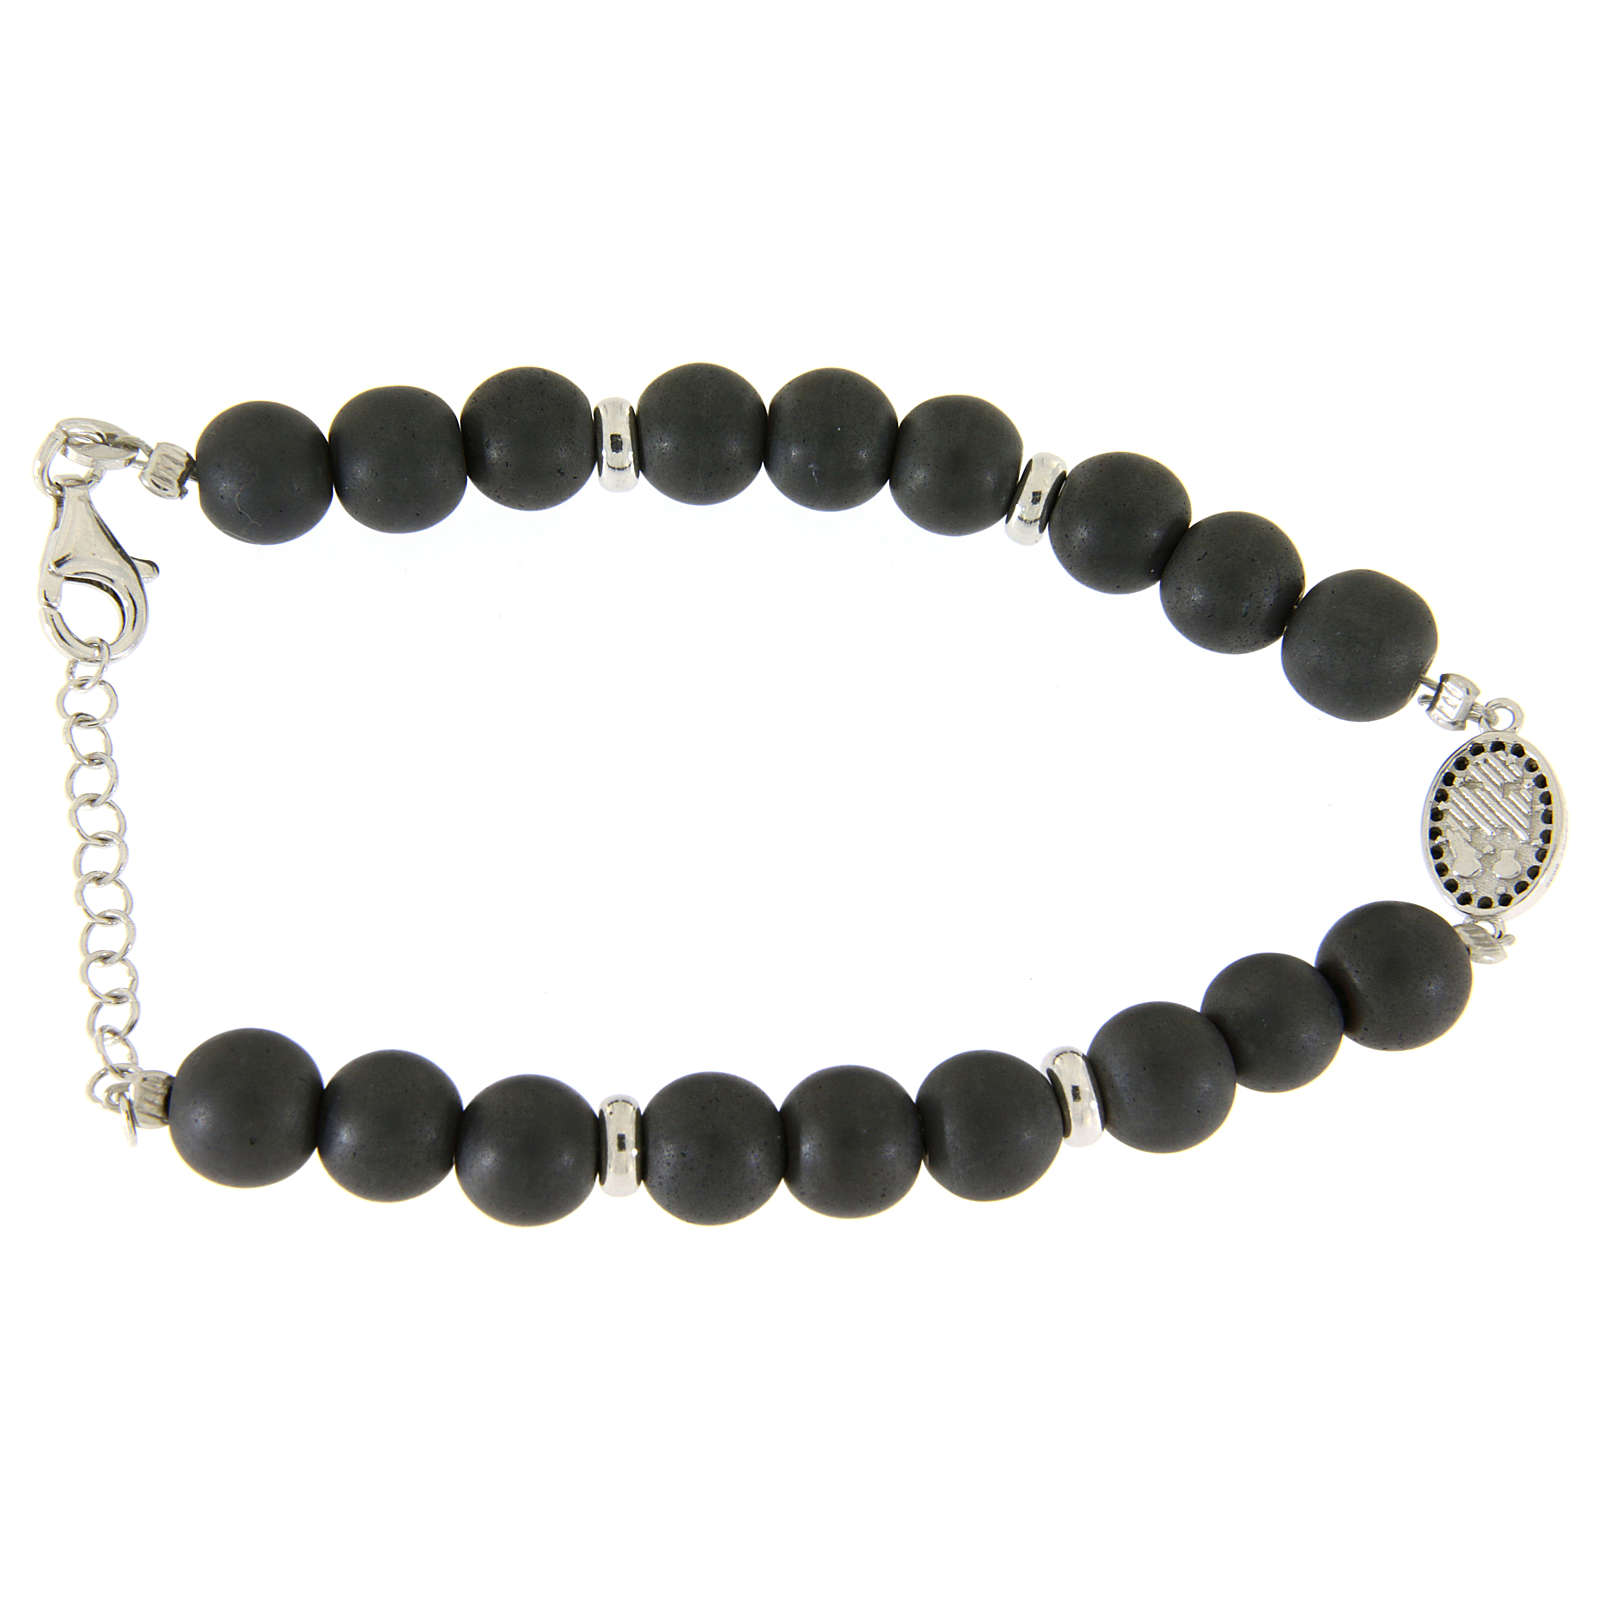 Bracelet with Saint Rita medalet, black zircons and hematite beads sized 7 mm 4